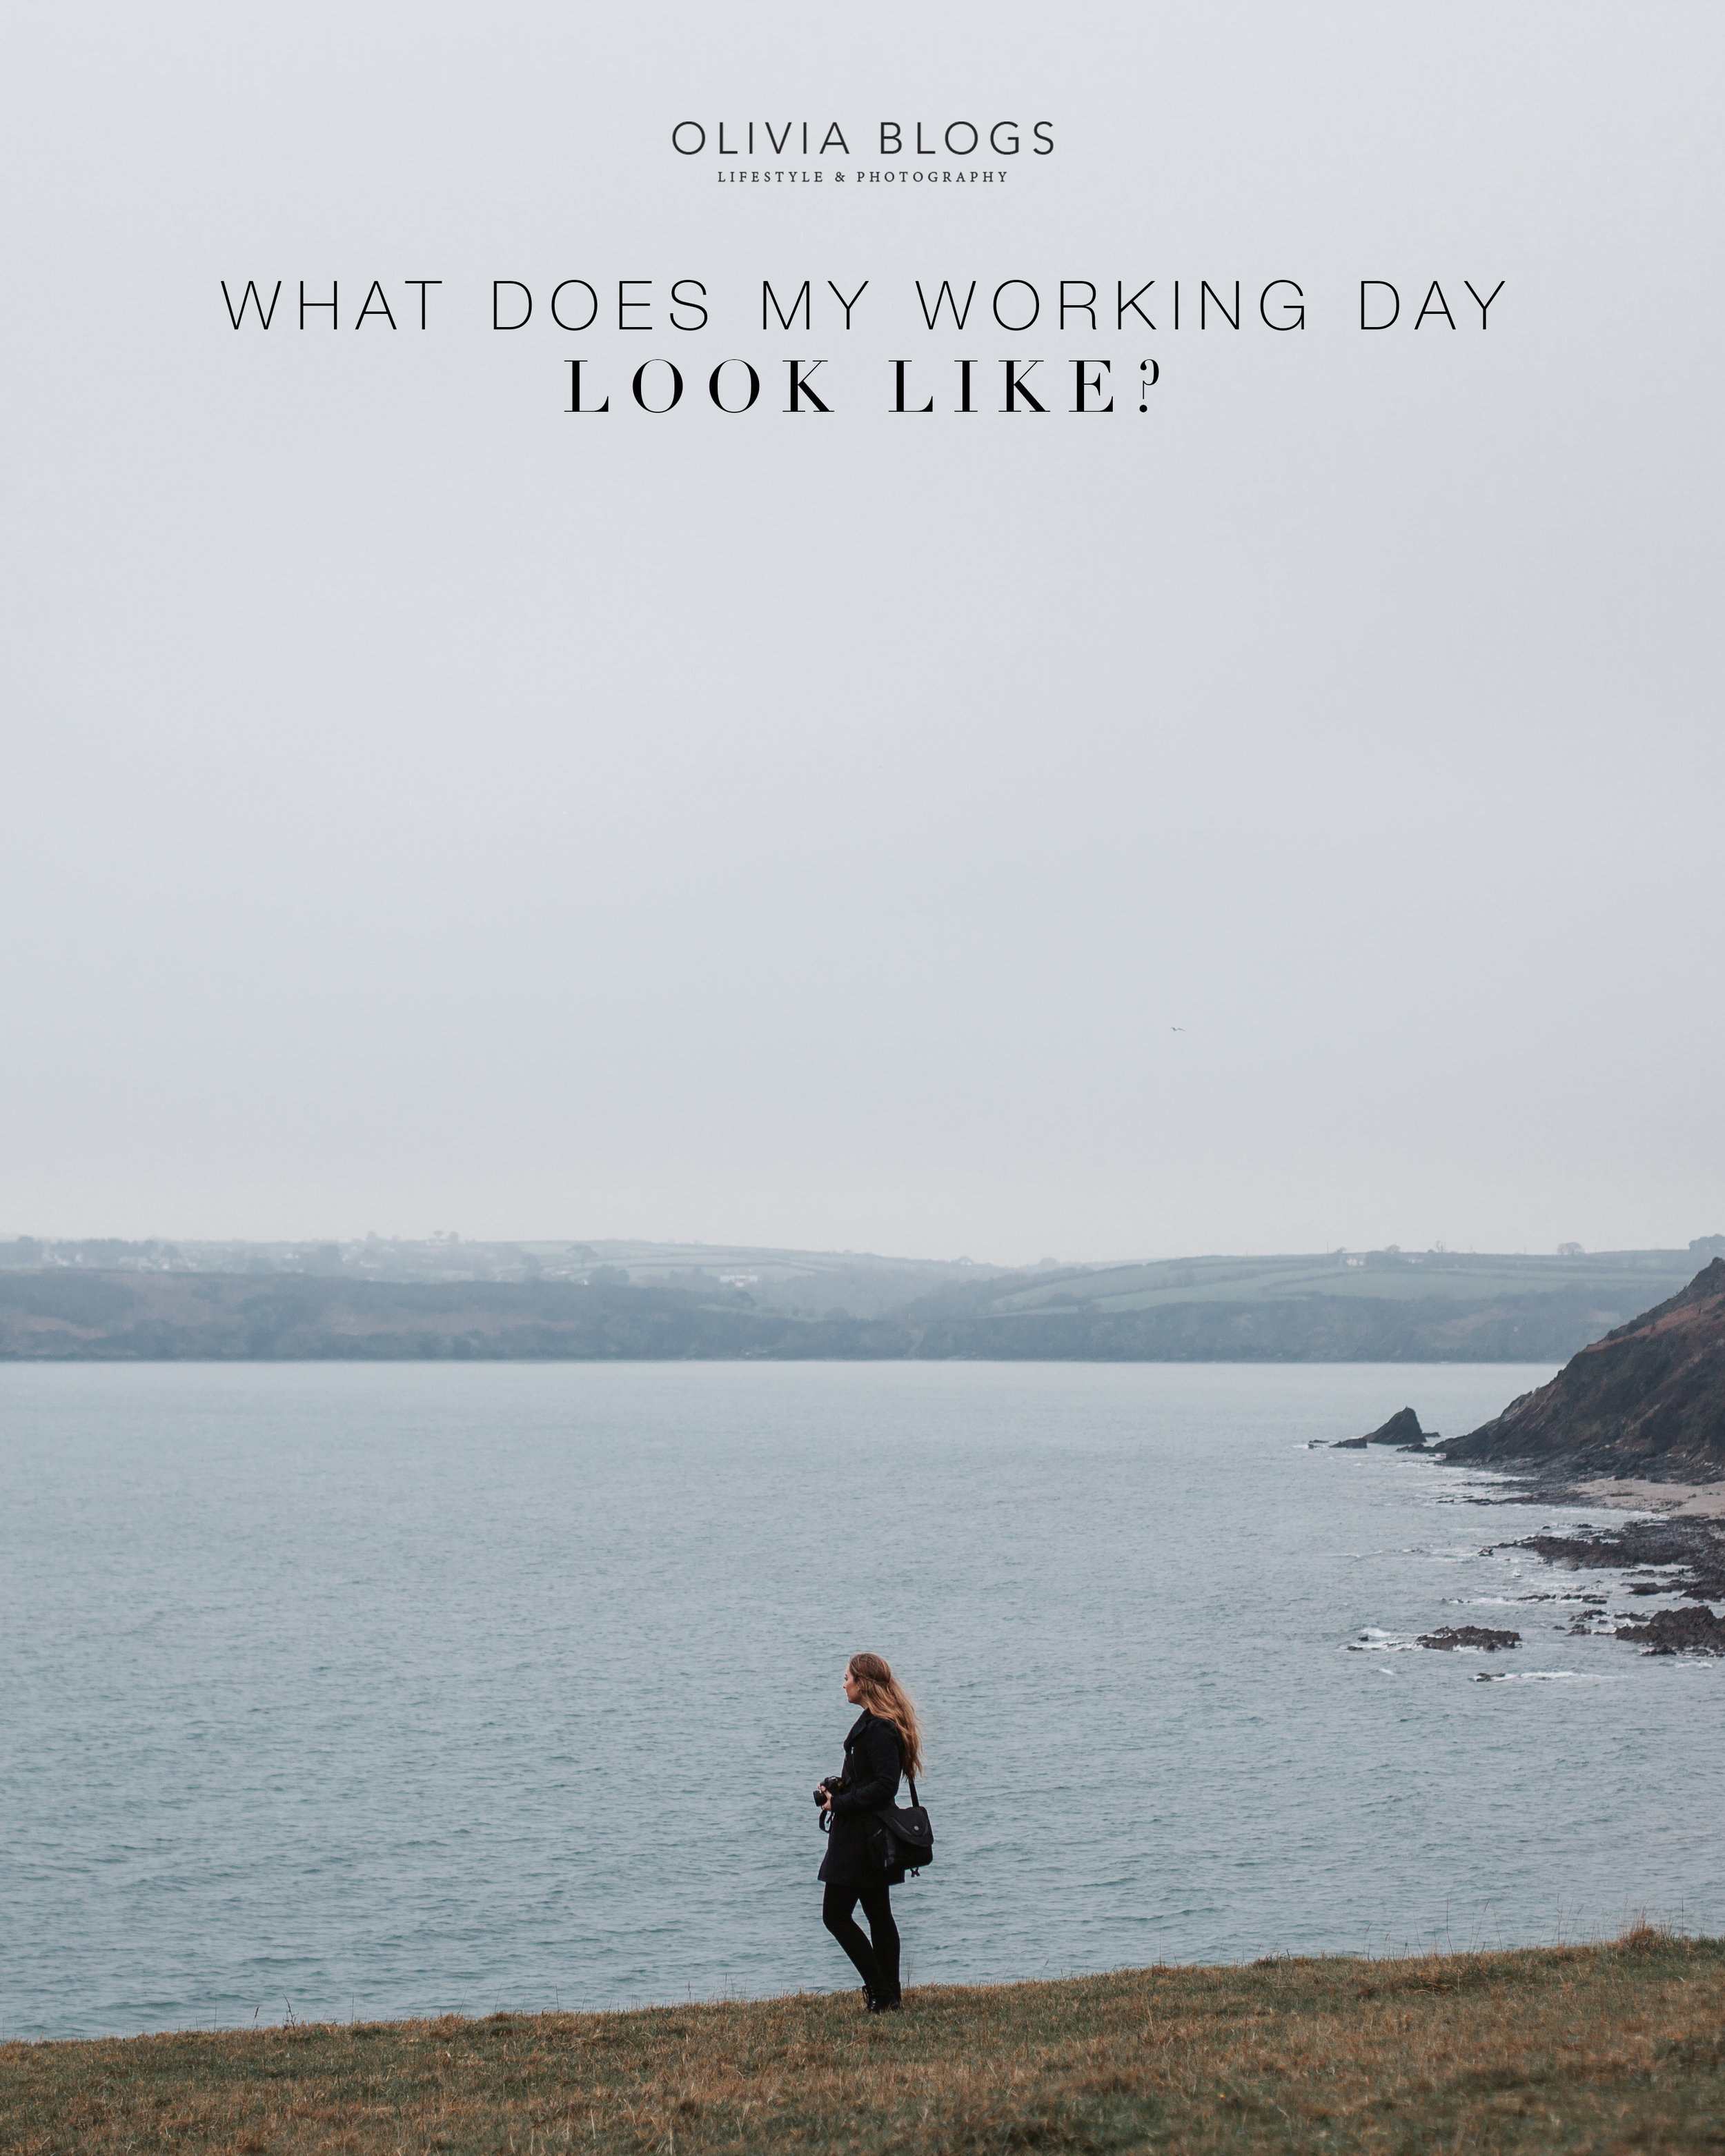 What Does My Working Day Look Like?